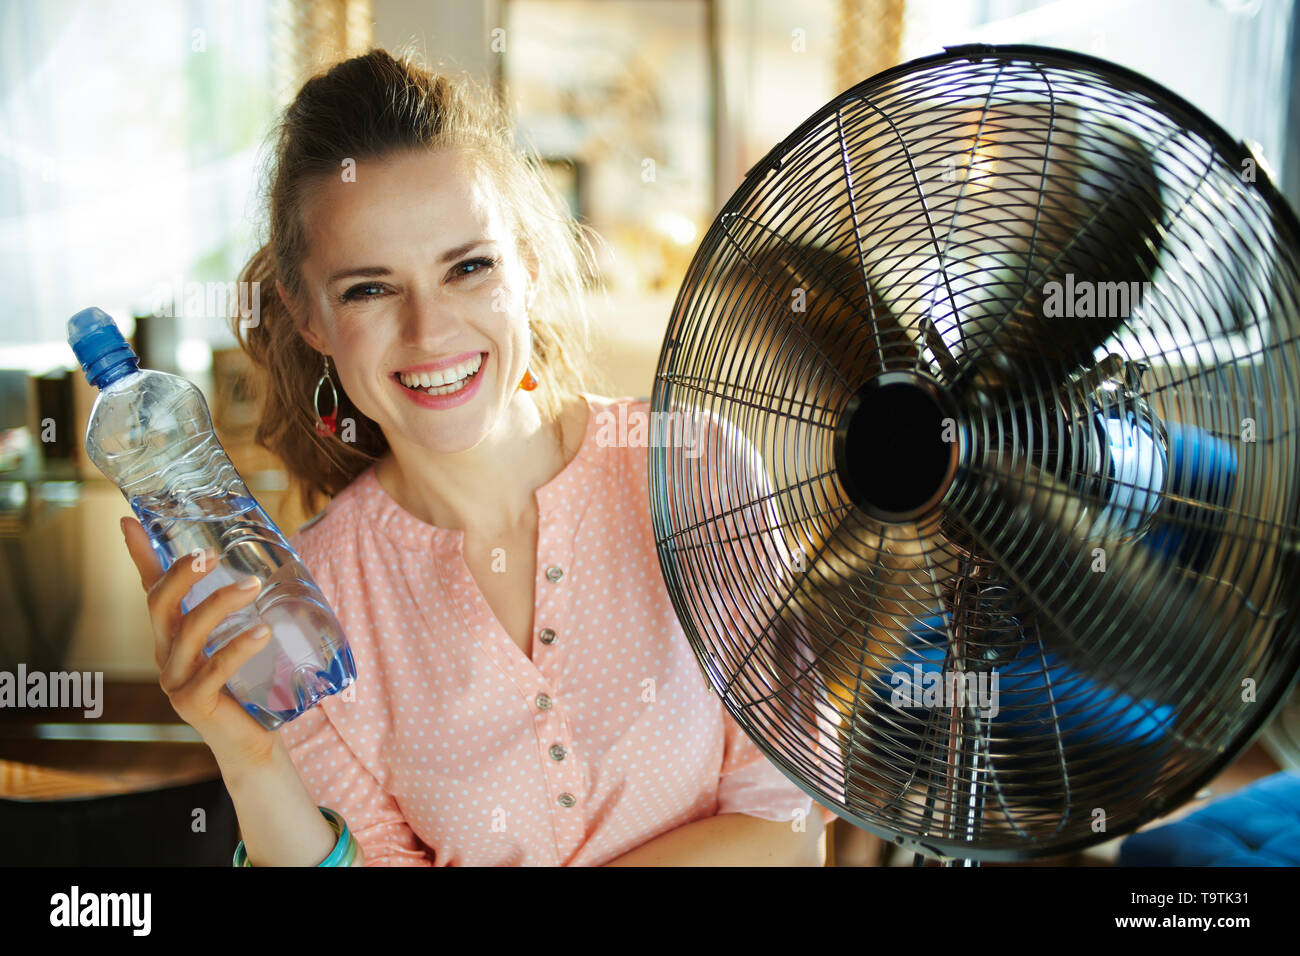 happy modern woman in the modern living room in sunny hot summer day showing cold bottle of water and enjoying fresh air in the front of working fan. - Stock Image